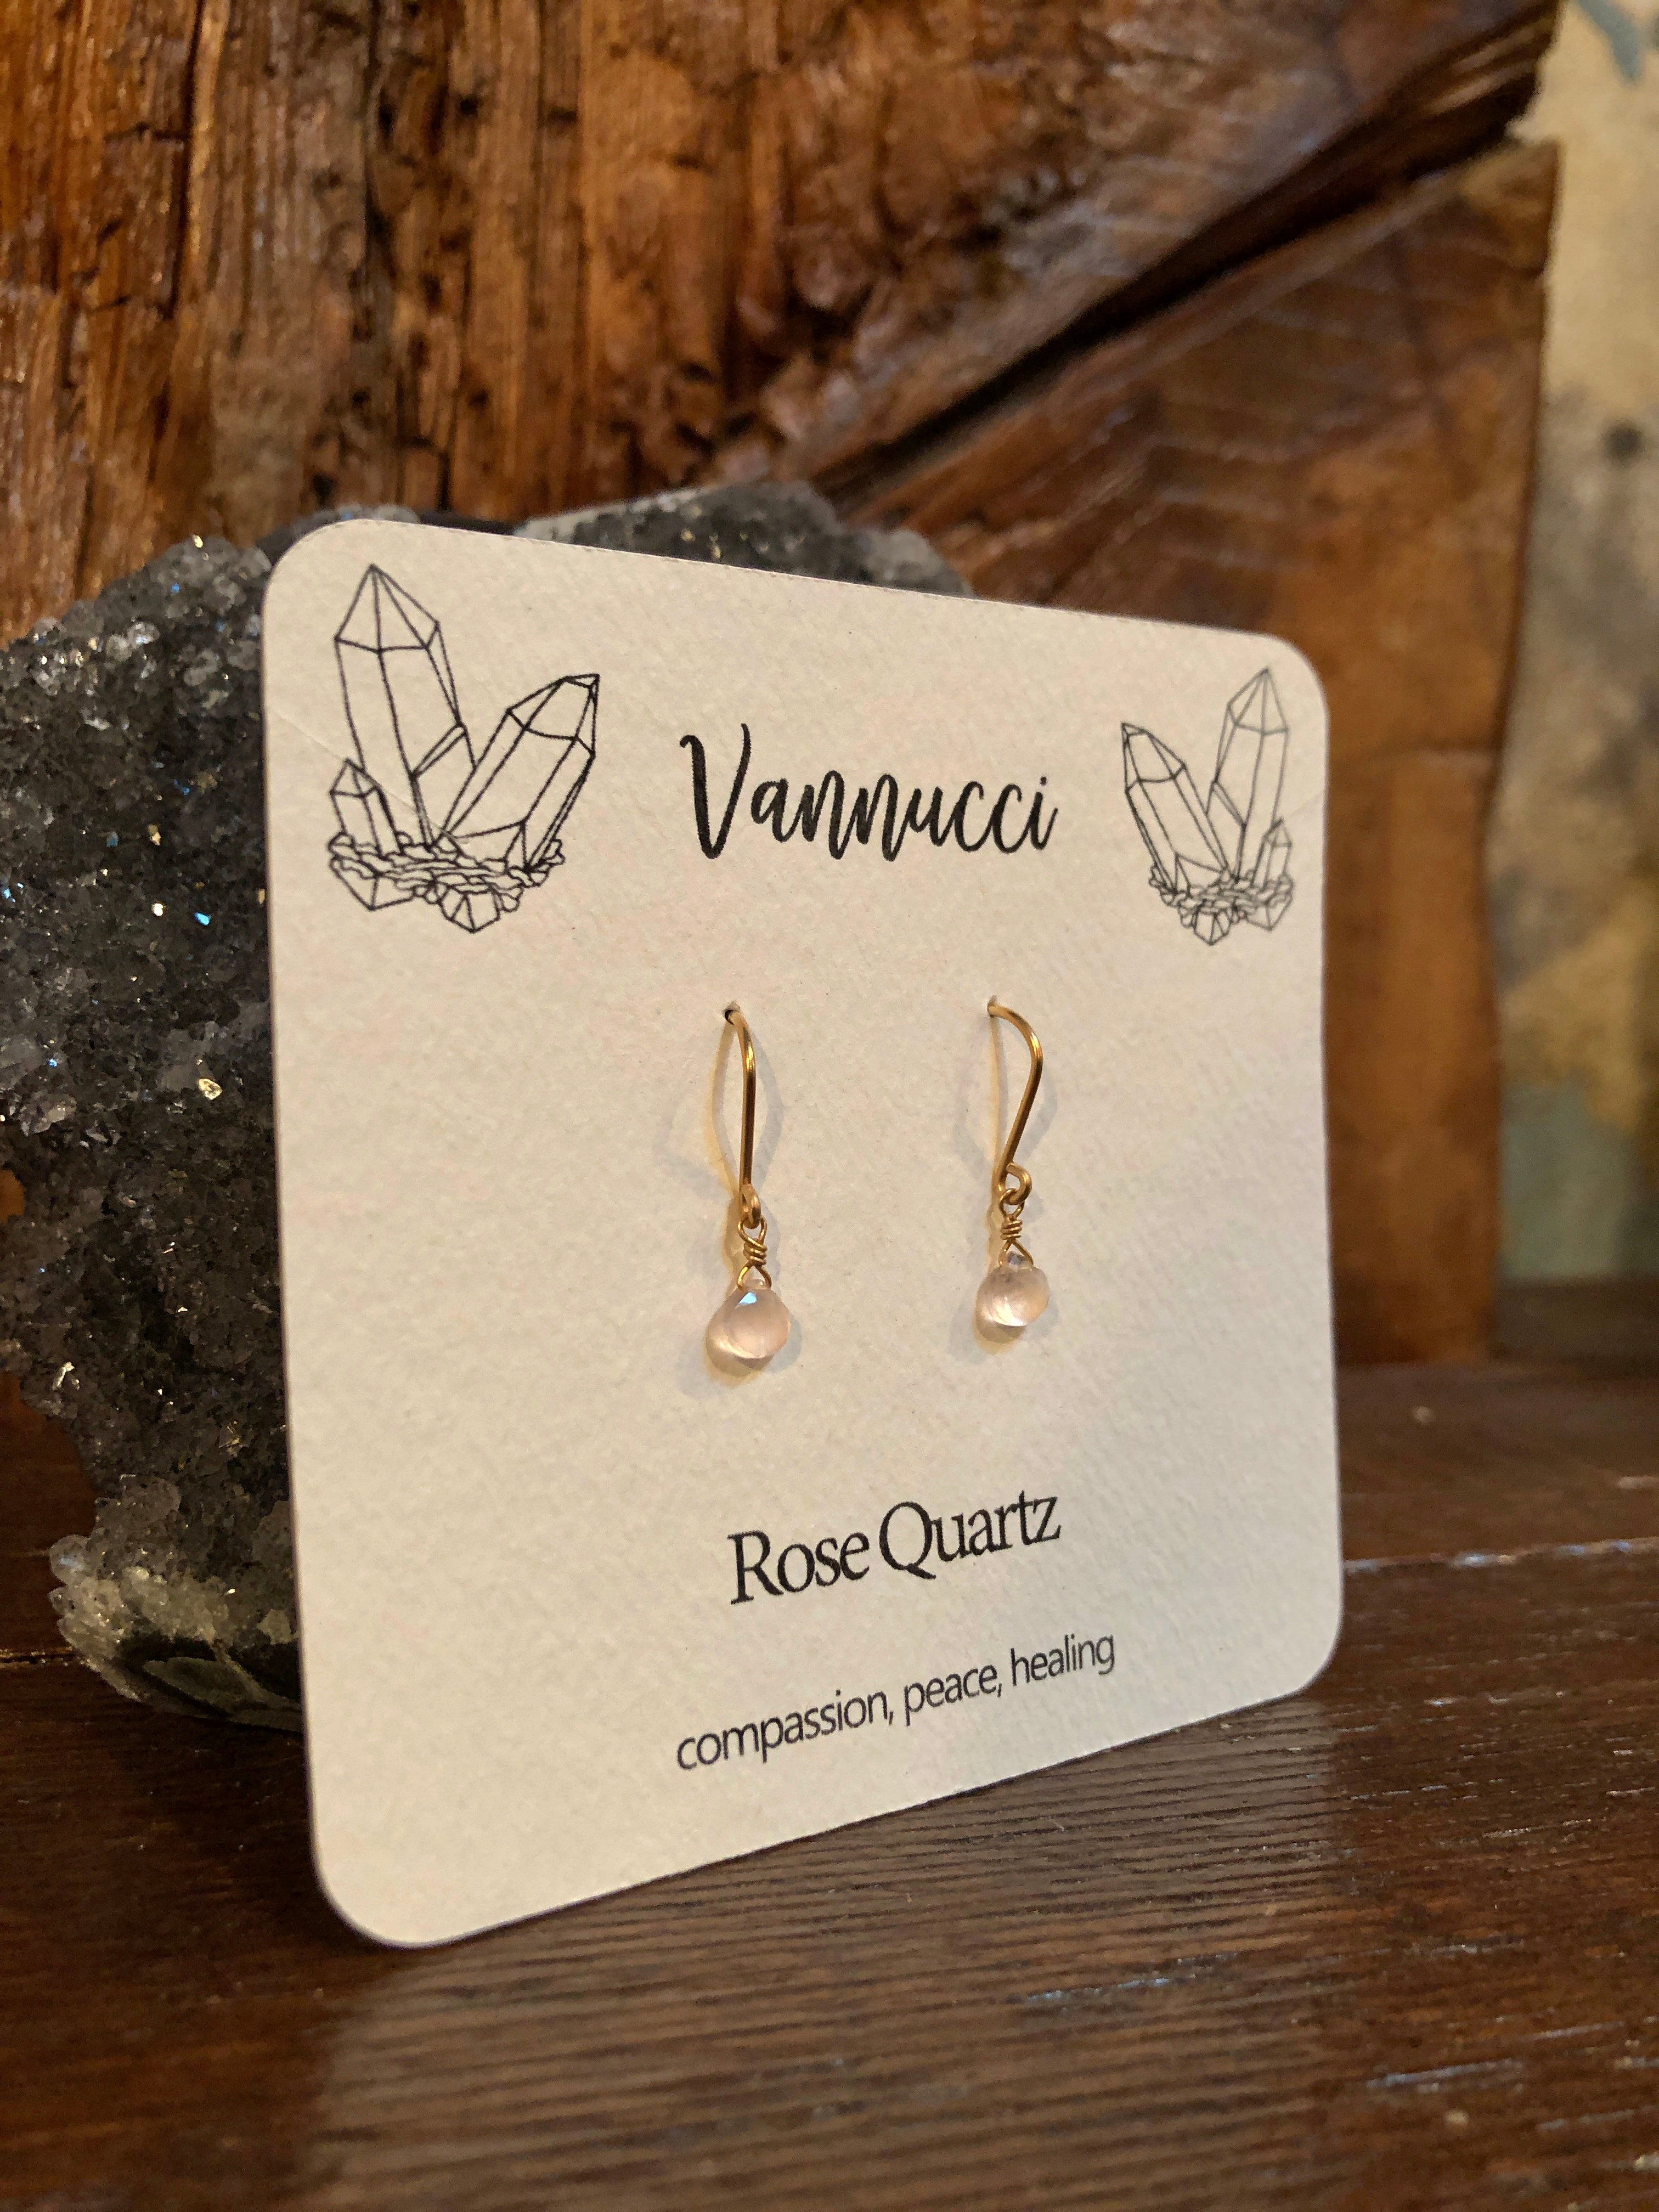 Vannucci Gold Rose Quartz Teardrop Earrings